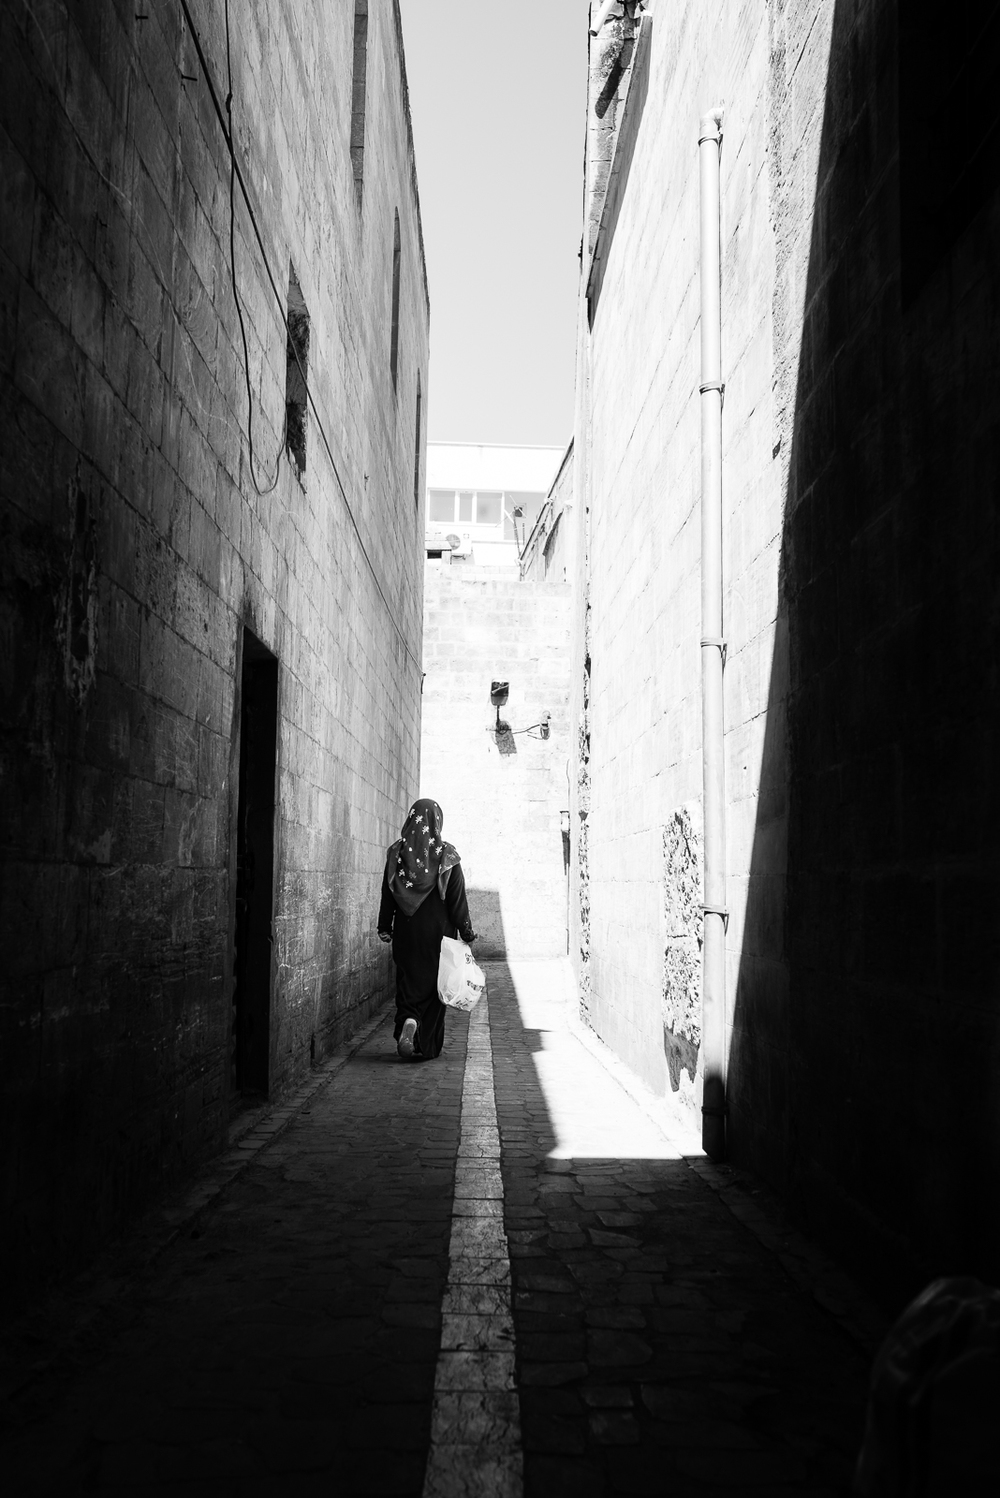 A lady on the Diyarbakir's alleys